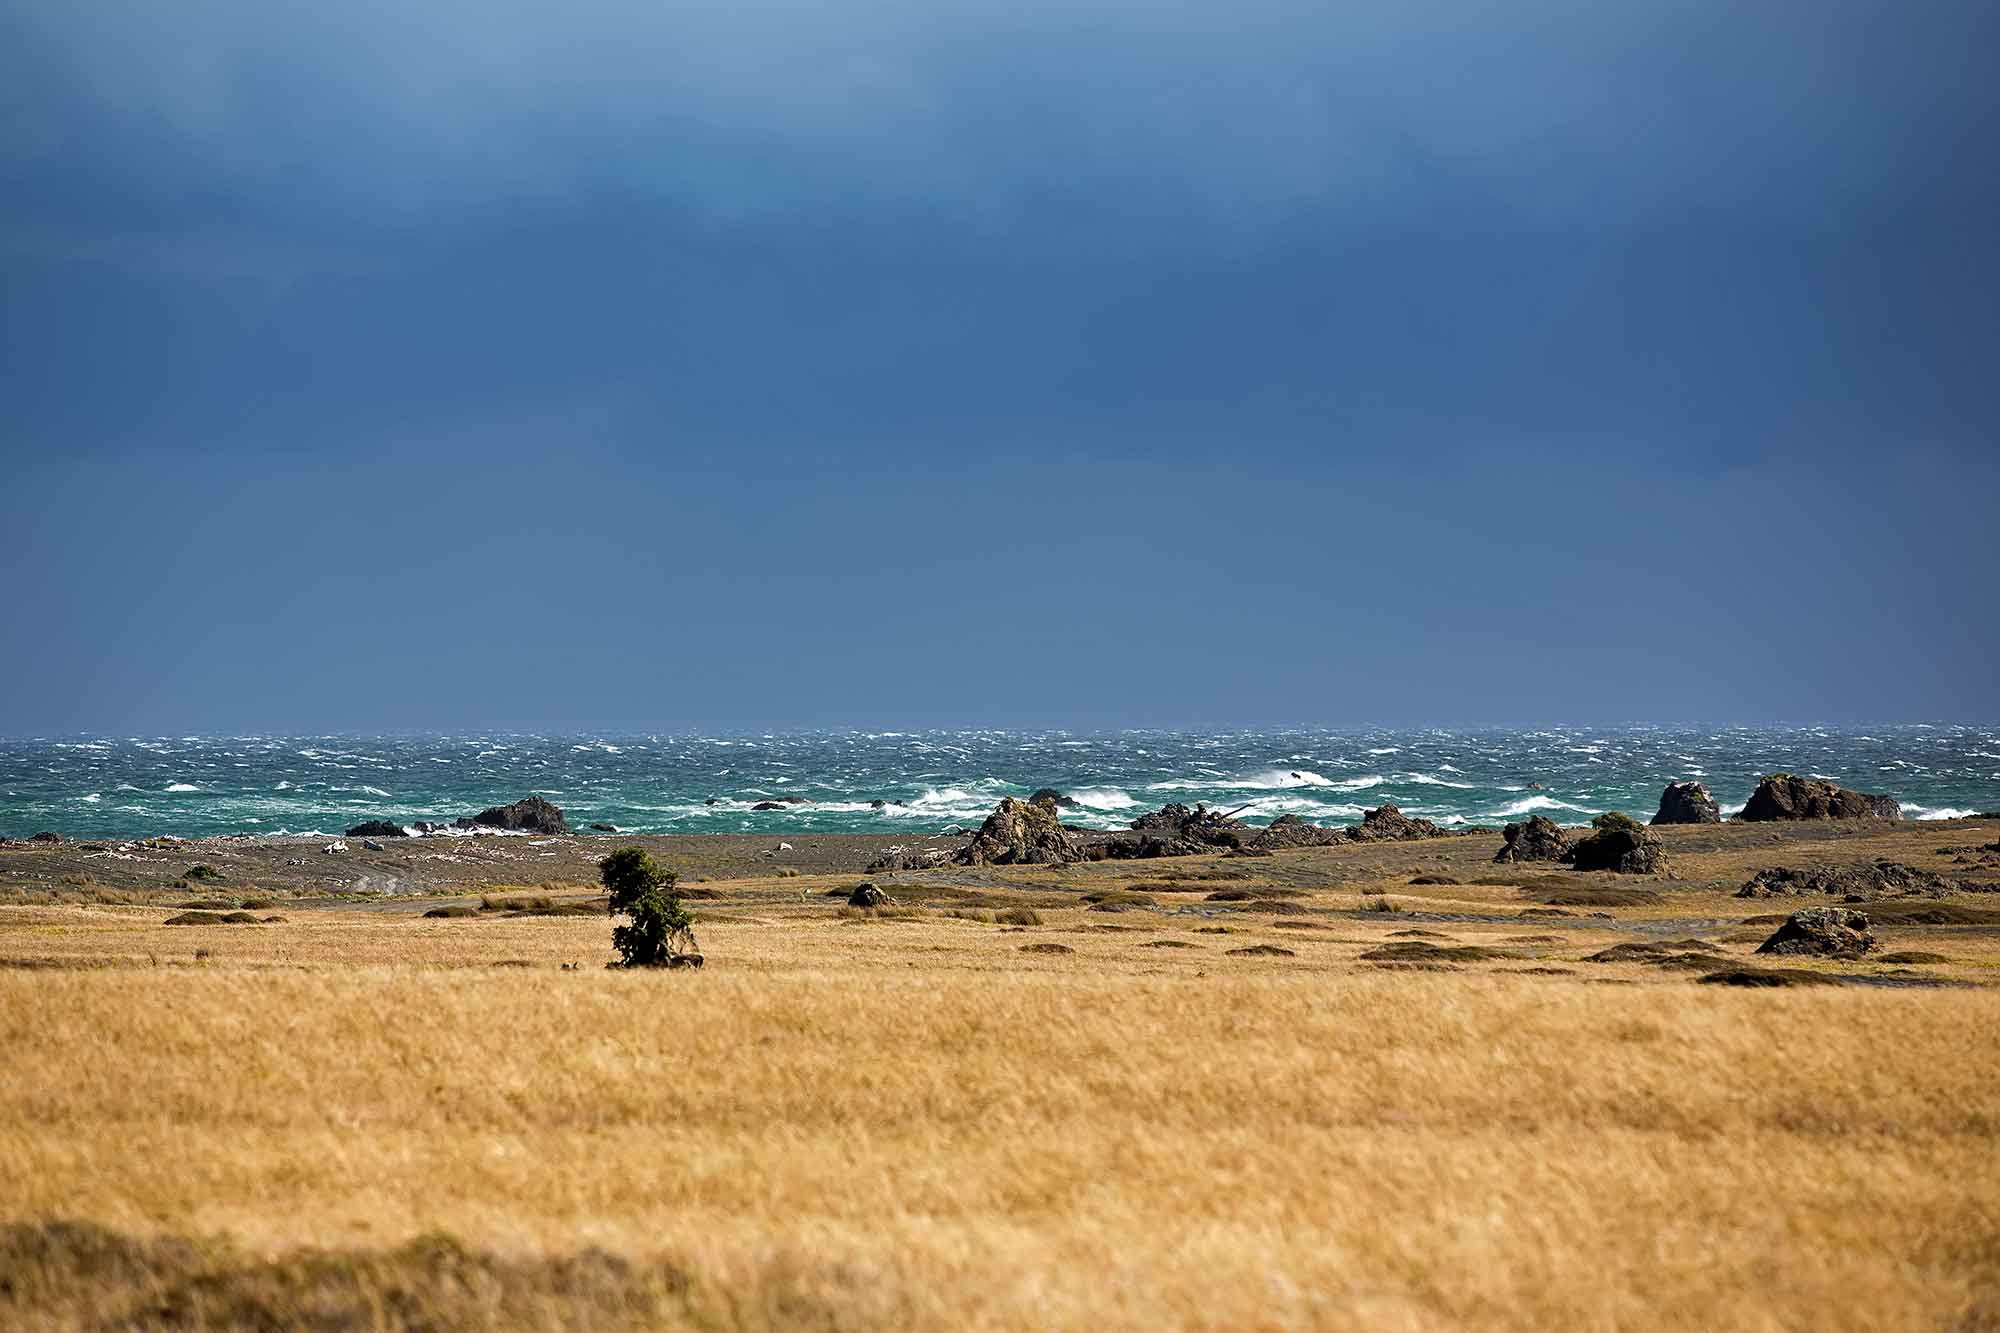 A storm is approaching on Cape Palliser, New Zealand. © Ulli Maier & Nisa Maier